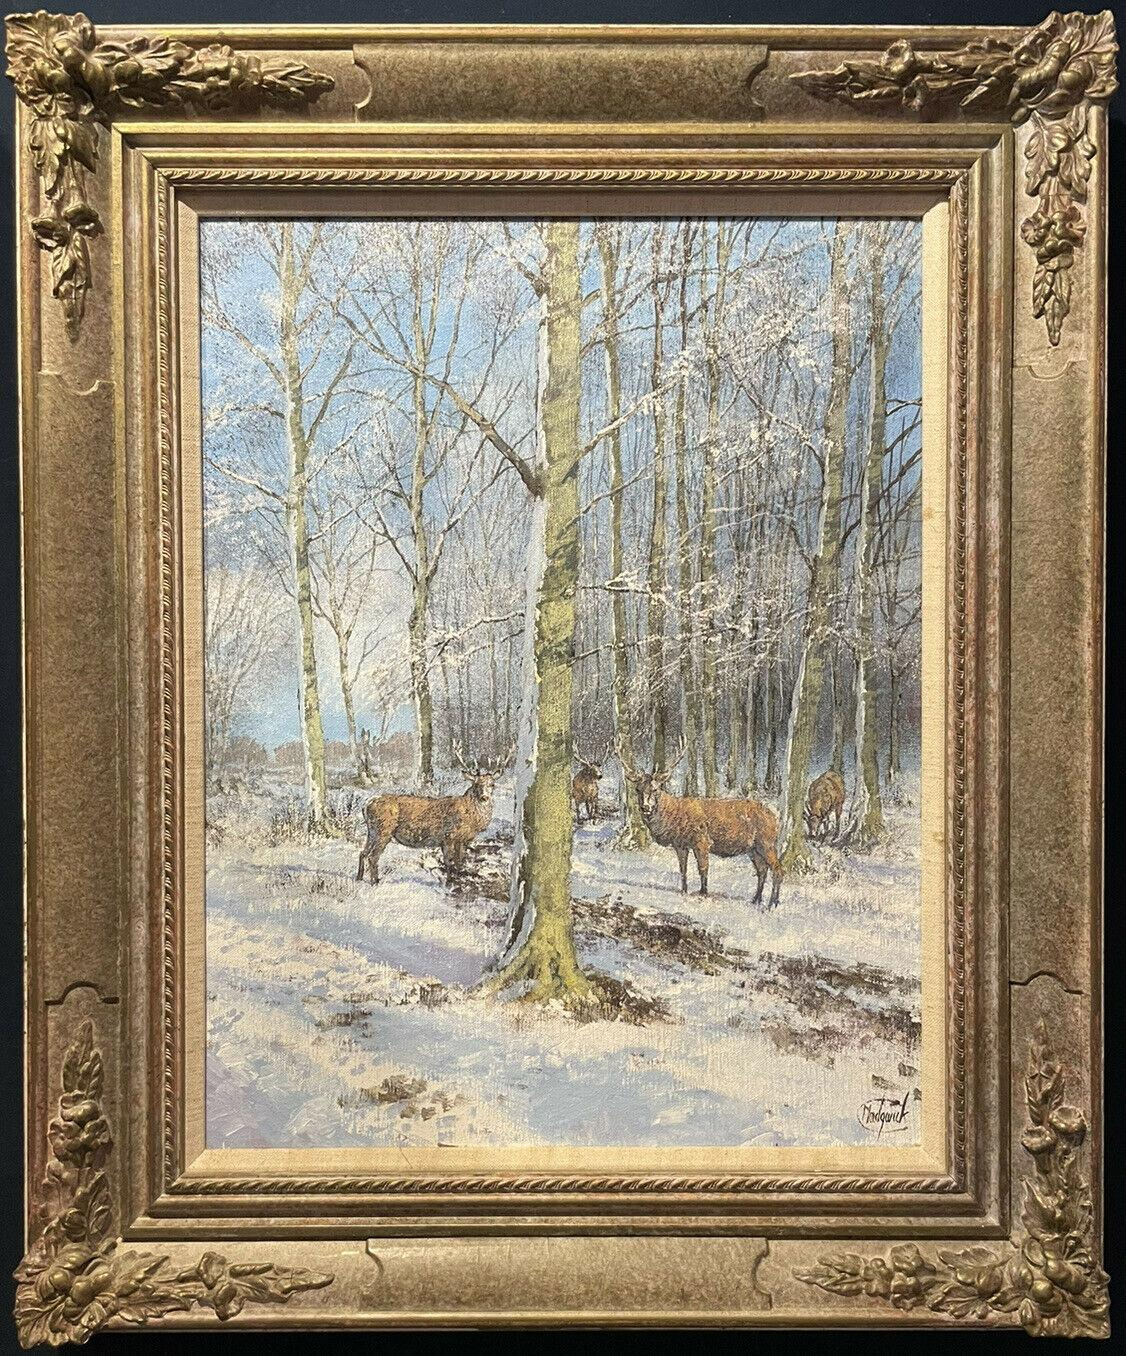 CLIVE MADGWICK (1934-2005) SIGNED OIL - STAGS IN WINTER WOODLAND LANDSCAPE